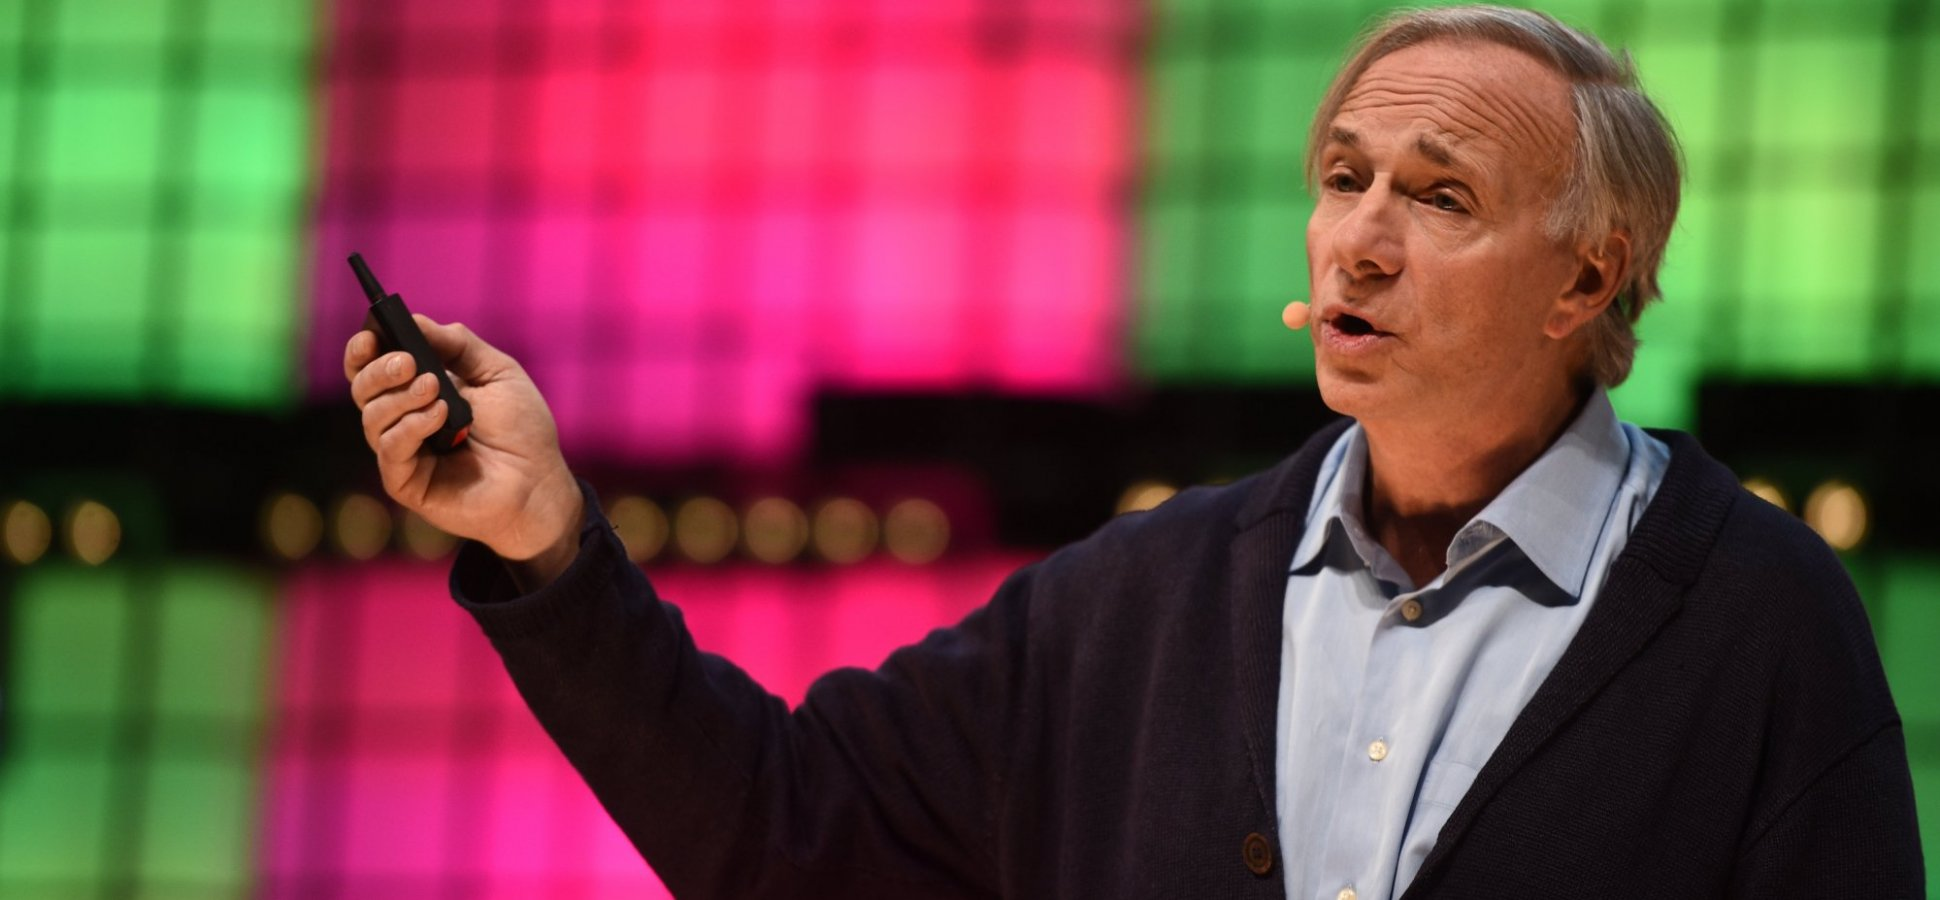 Self-Made Billionaire Ray Dalio: 5 Words That Are a Sure Sign Someone Is Closed-Minded